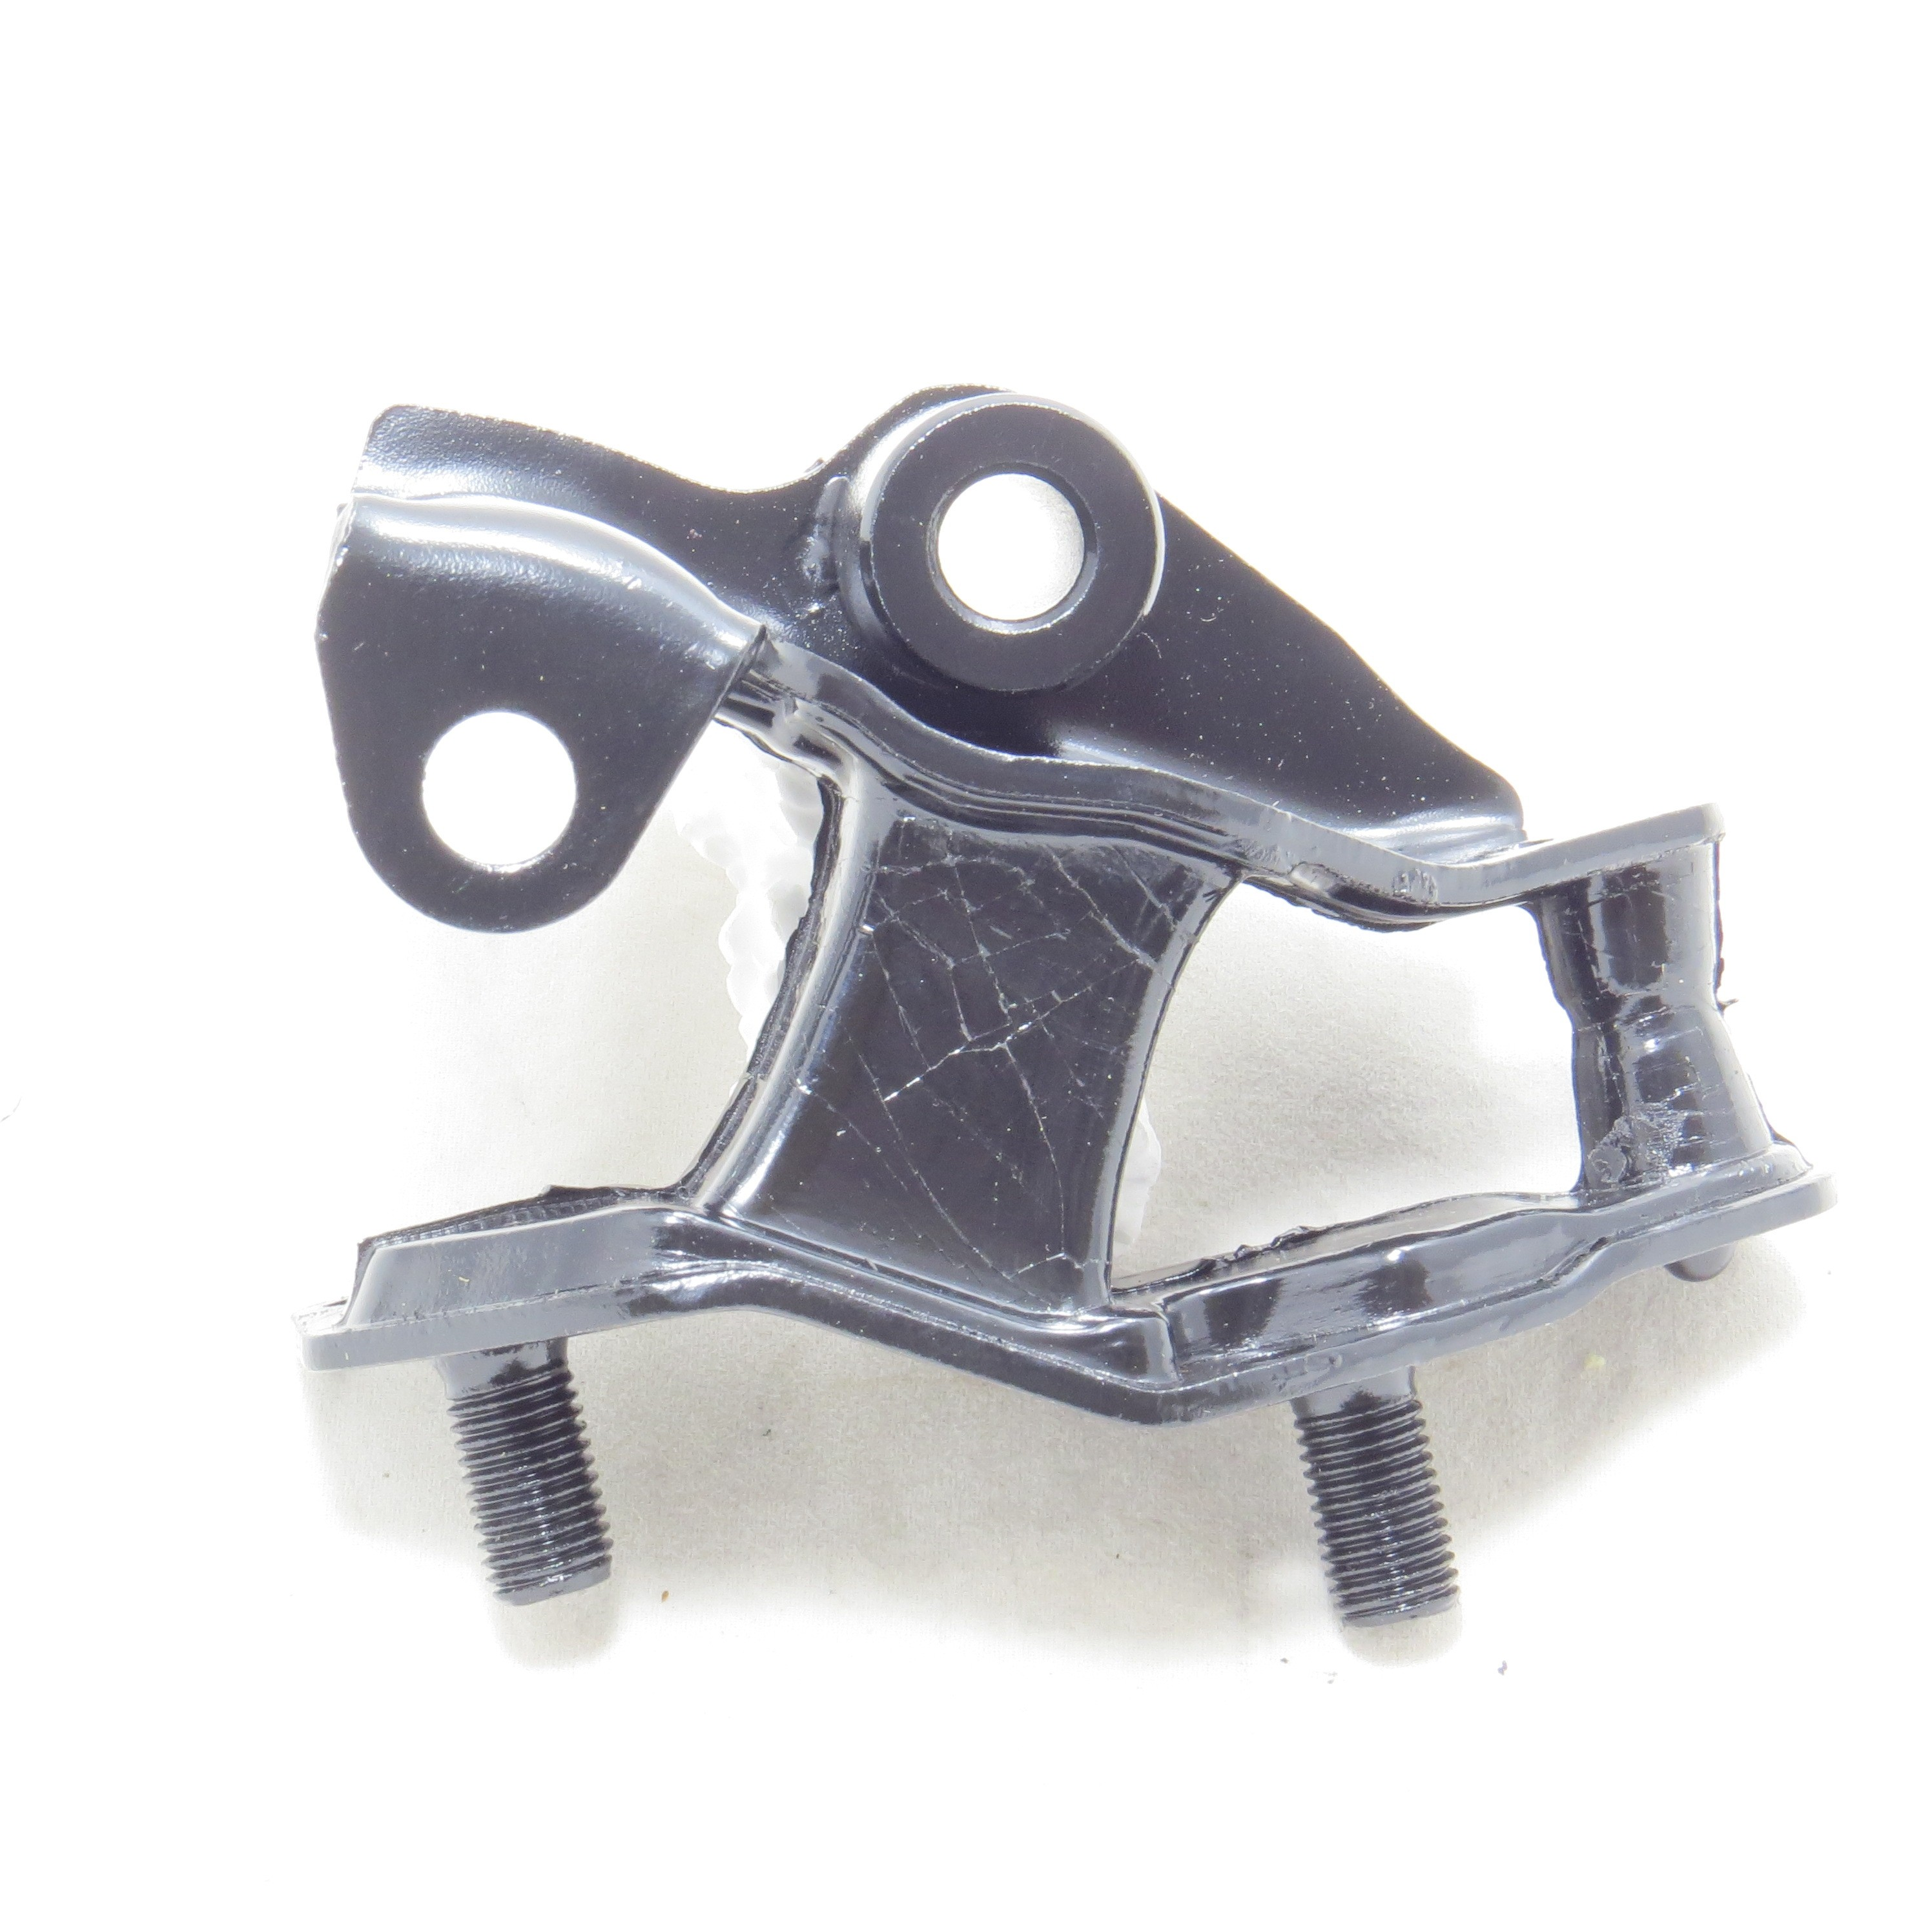 Rear Transmission Mount For 2.4L 03-07 Accord & 04-08 TSX